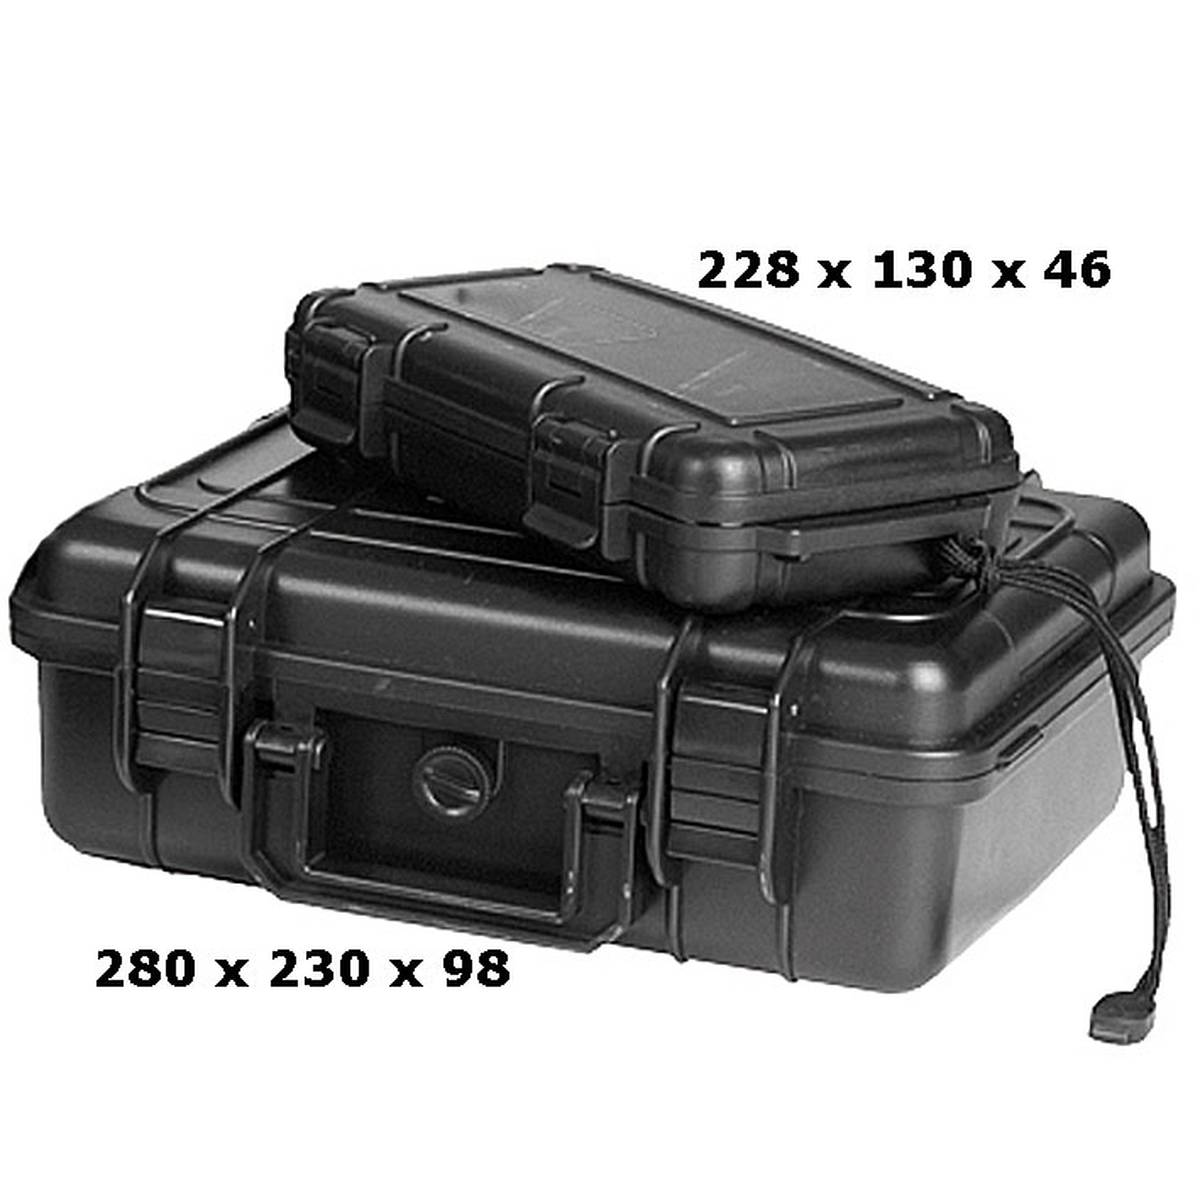 Kunststoff Transport Outdoor Box Case wasserdicht 26,7 x 23,9 x17,6 cm OD oliv